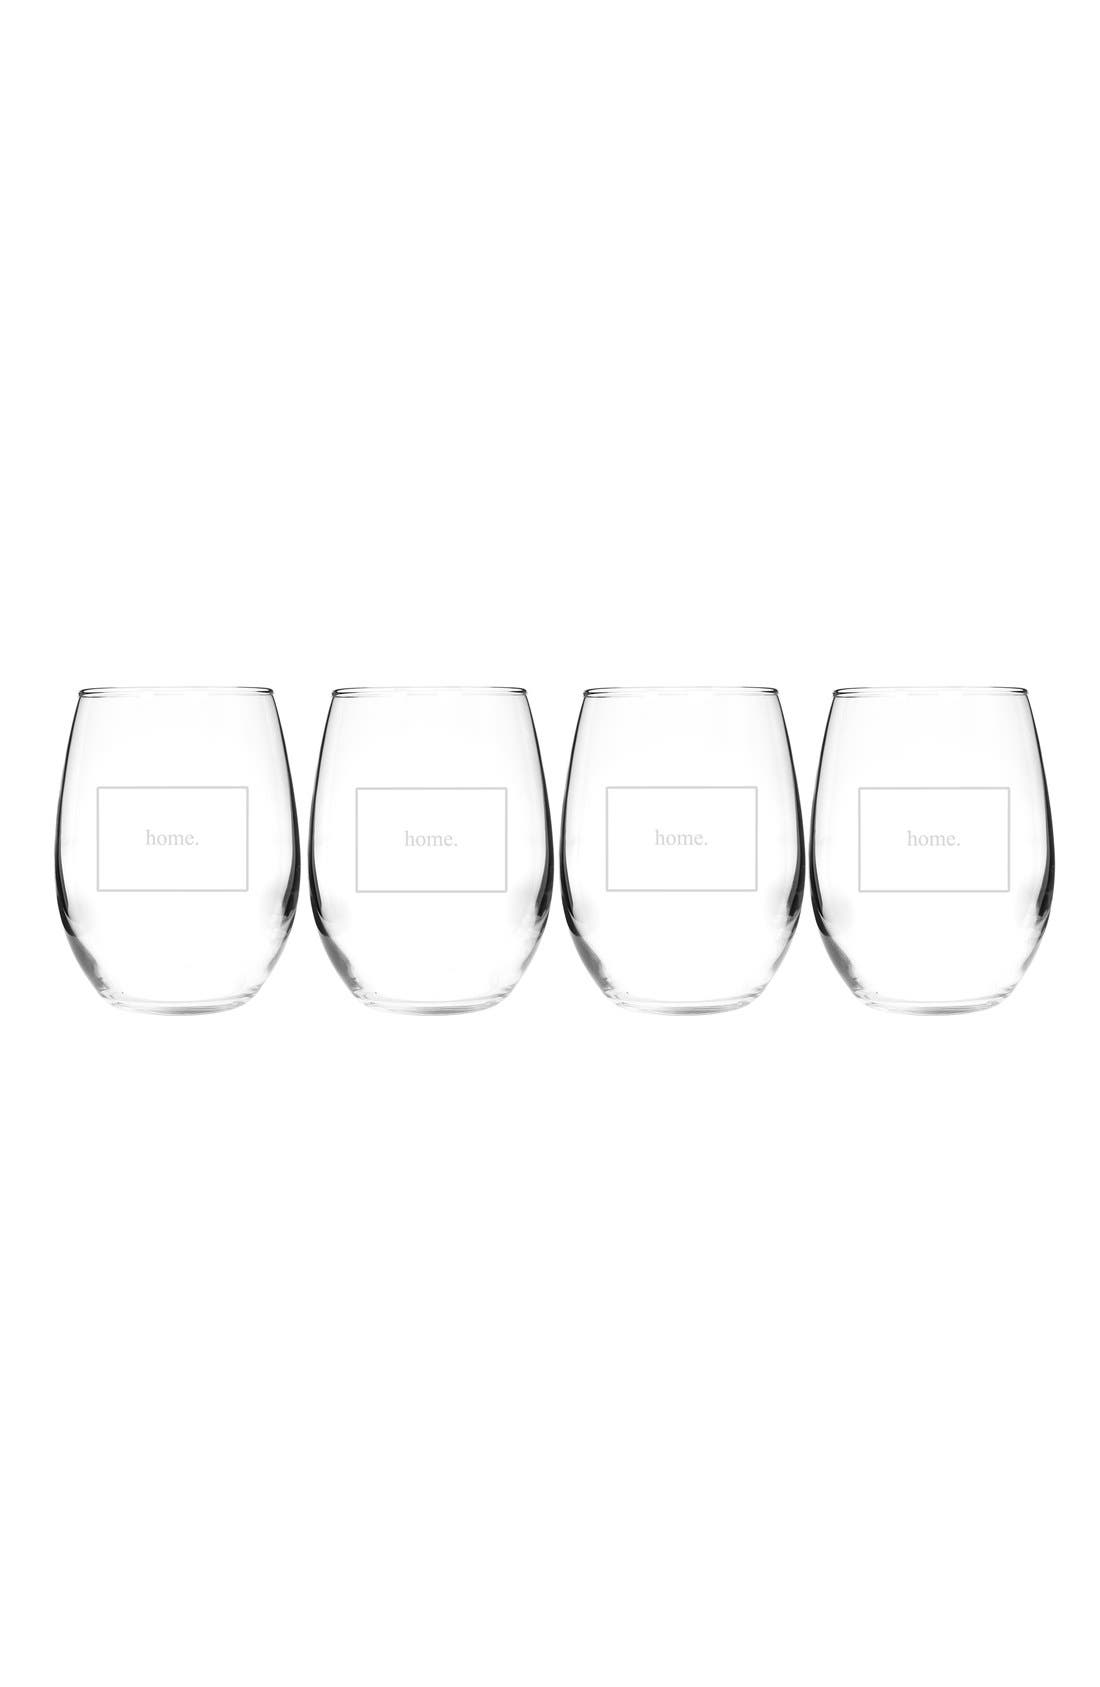 Home State Set of 4 Stemless Wine Glasses,                             Main thumbnail 7, color,